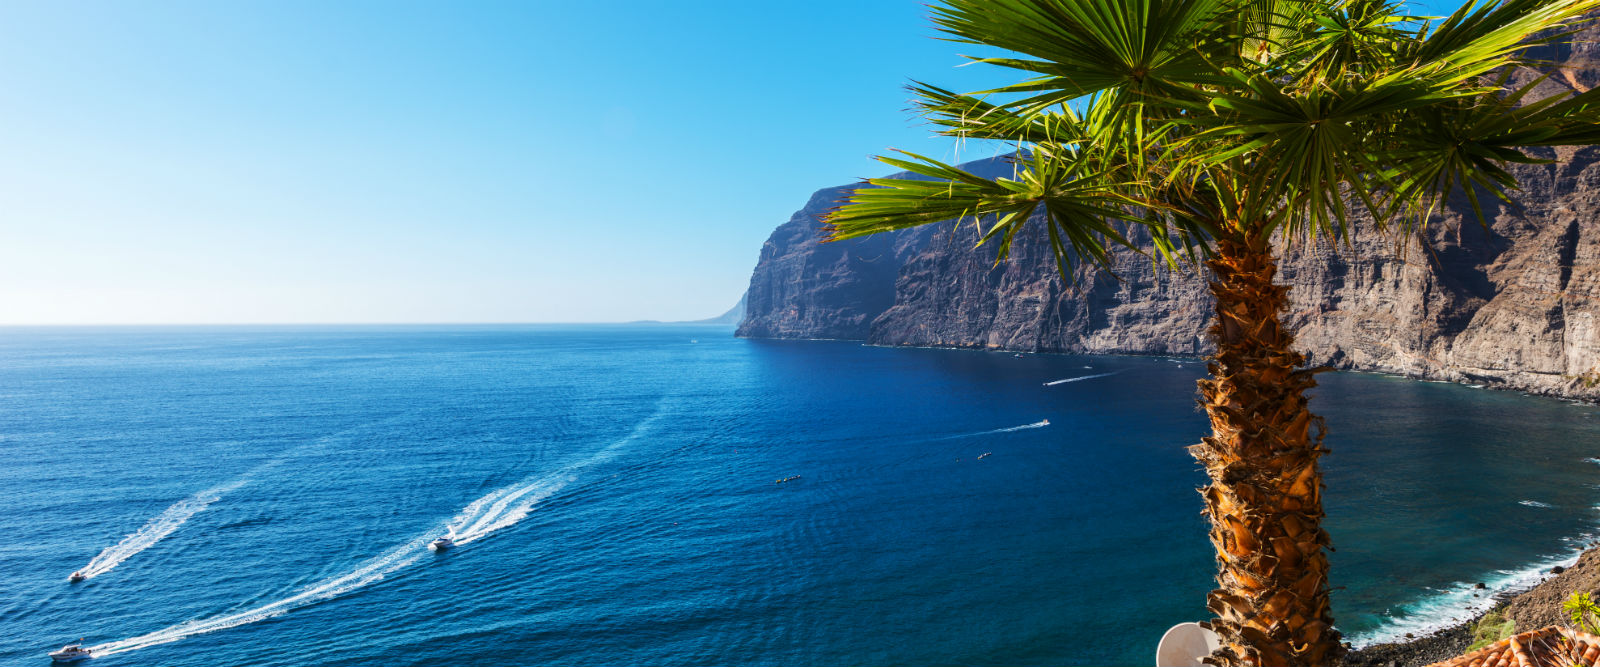 Which Canary Island Has Best Beaches